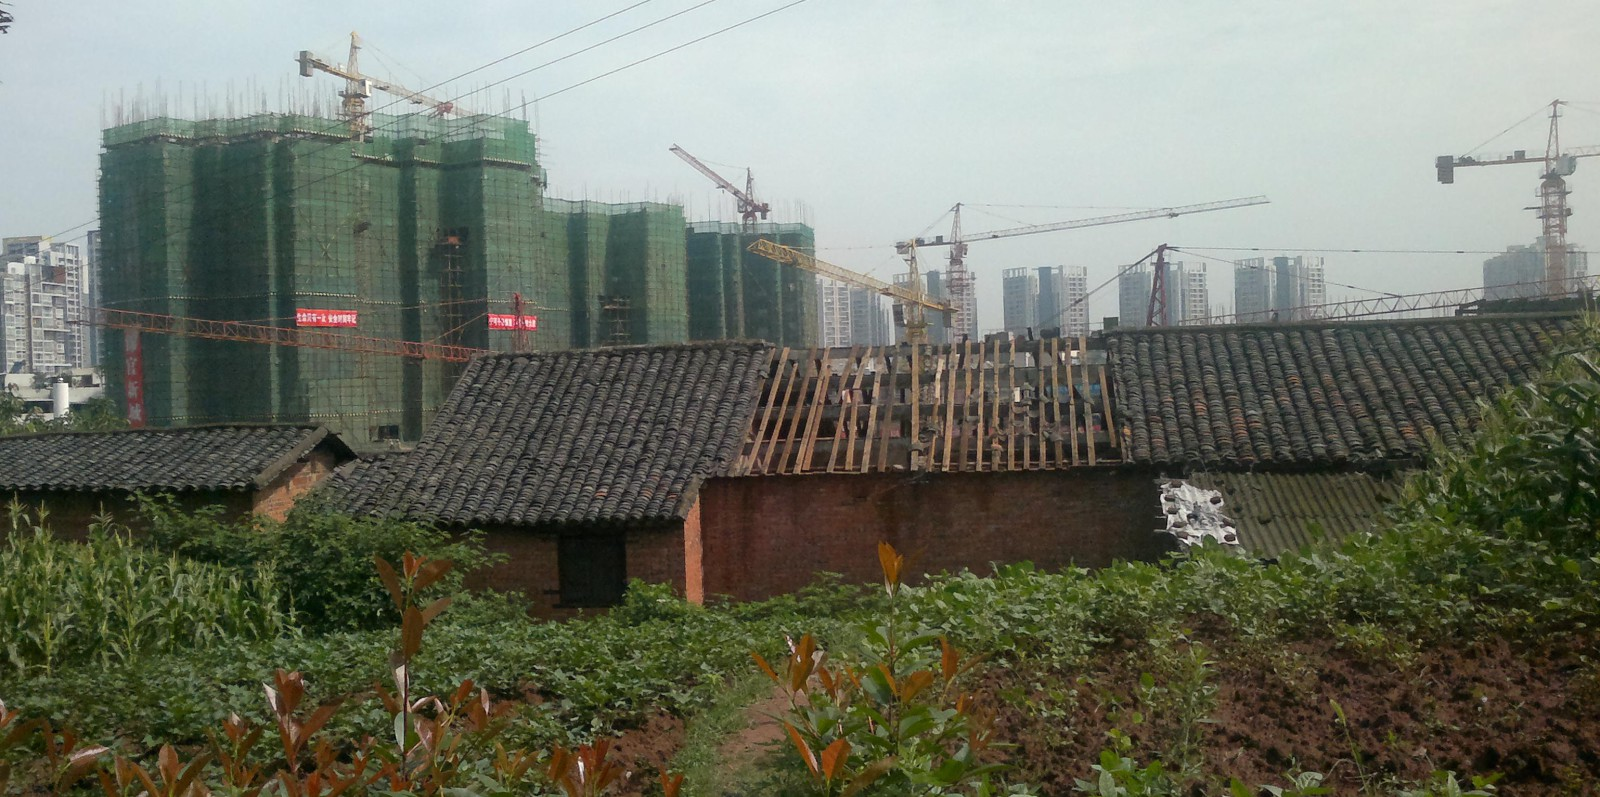 Construction fever. Hundreds of millions of Chinese await to leave the countryside for living in one of these beehies. Zijang